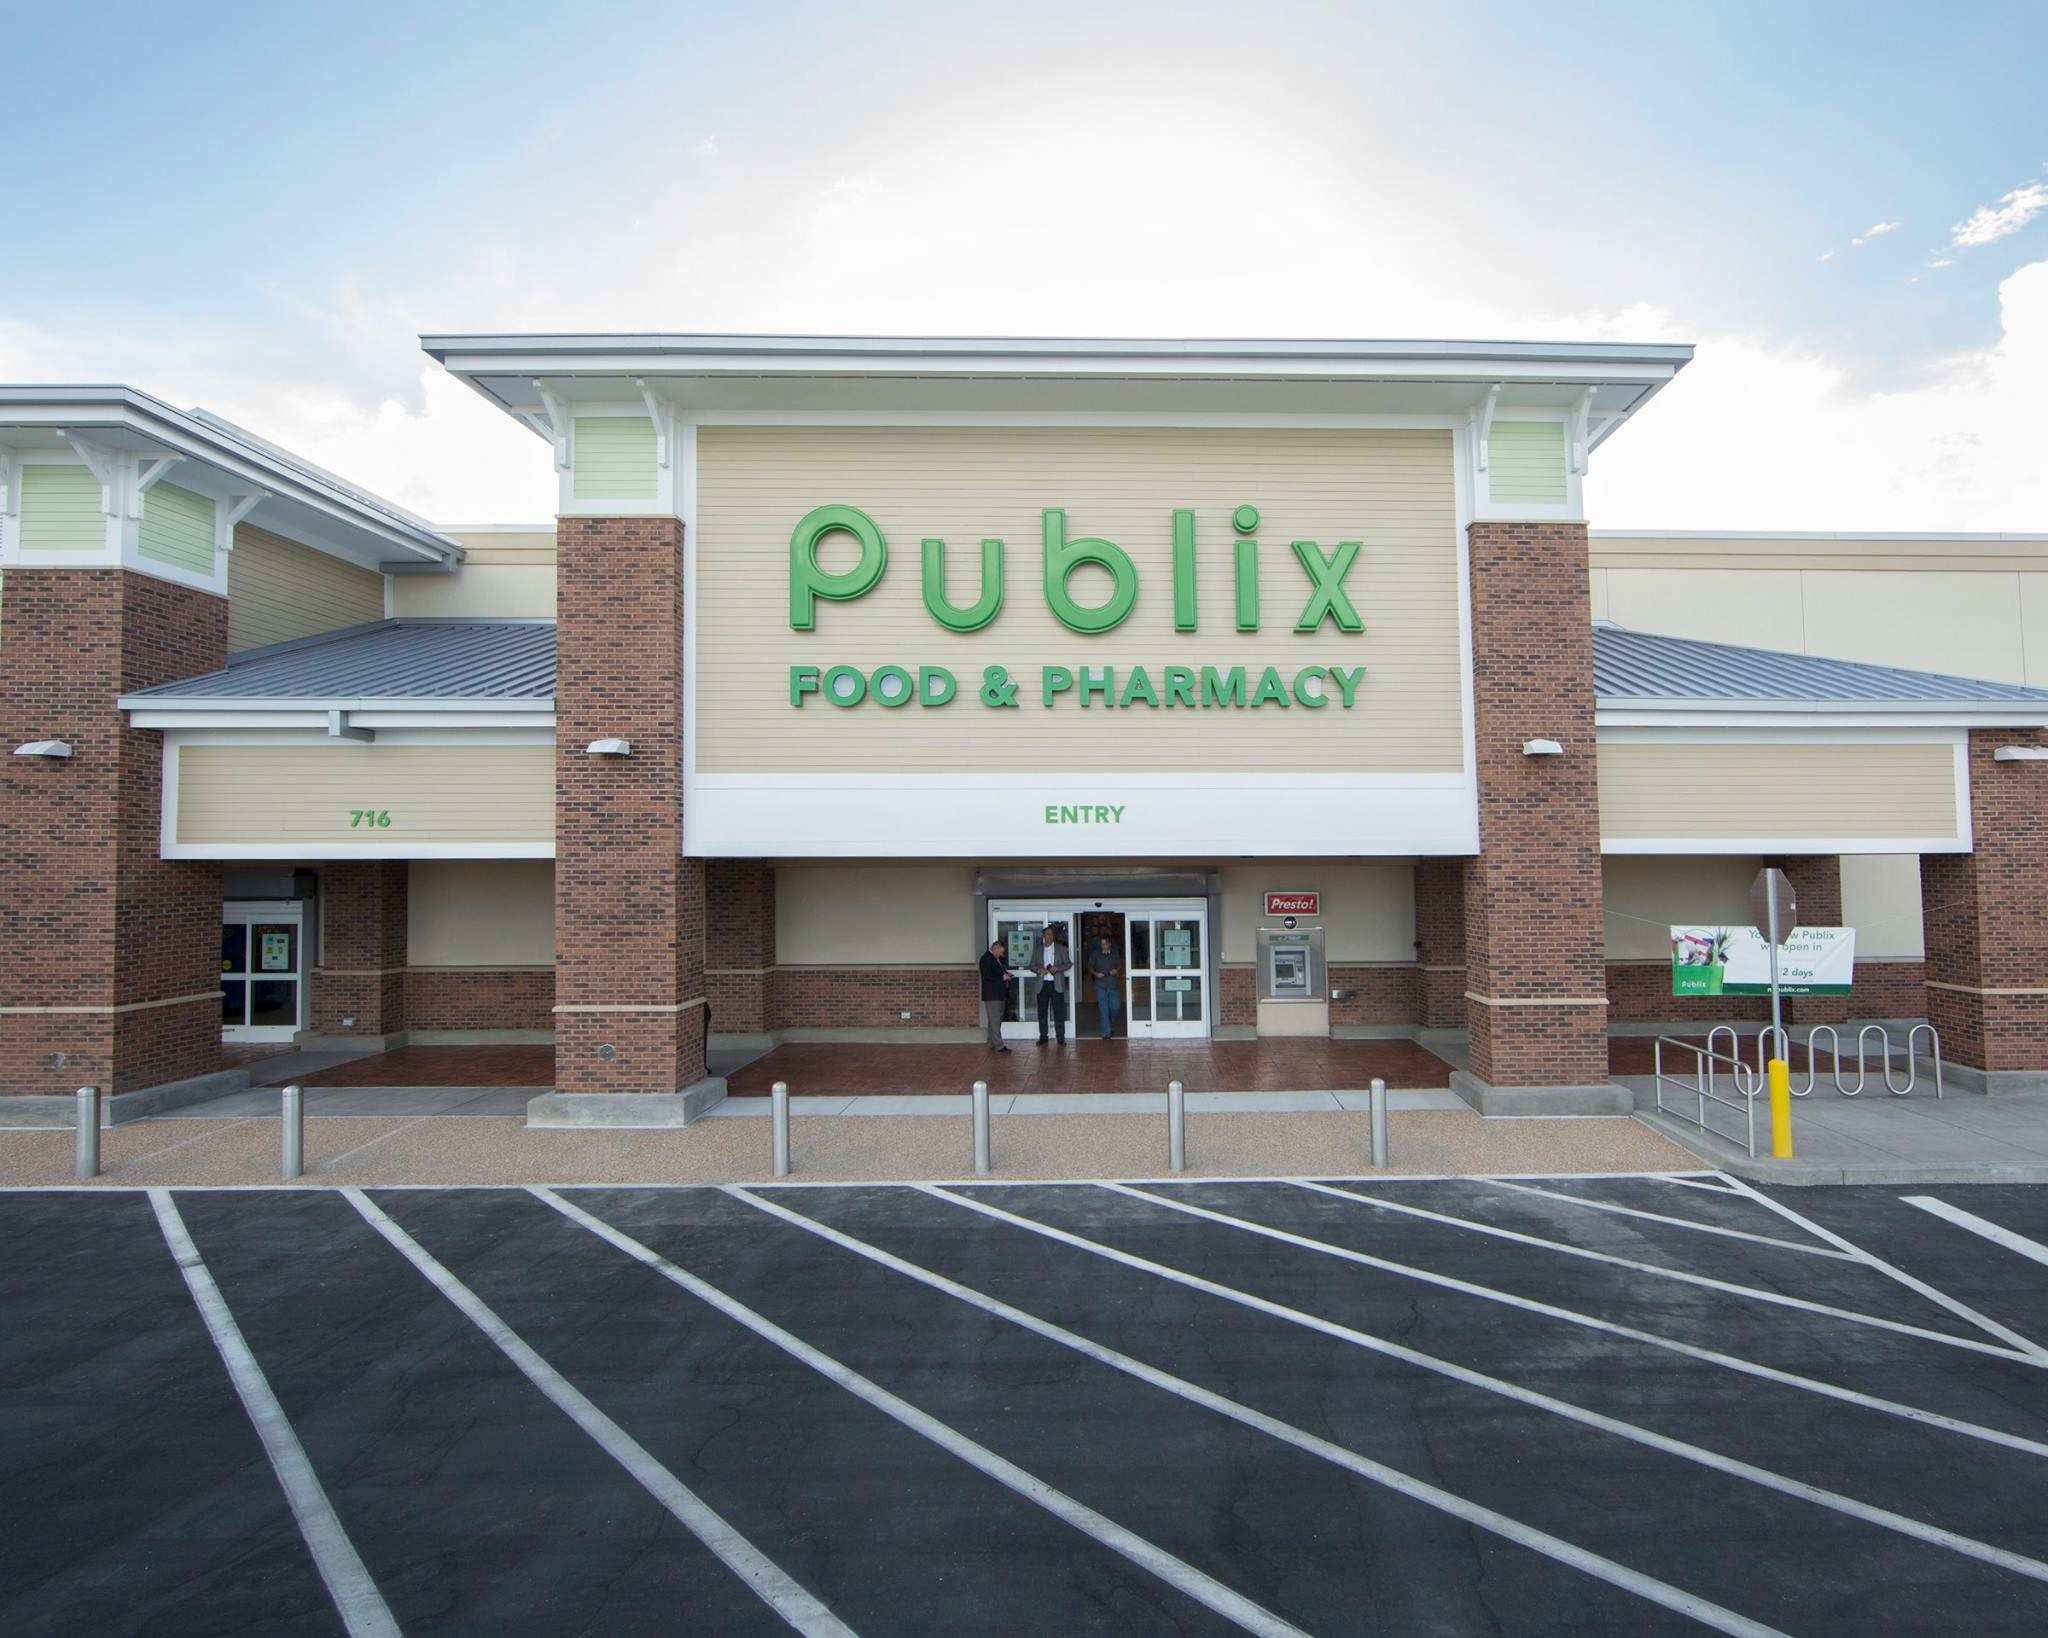 Publix has been named 37th of 50 Top-Rated Workplaces for Veterans in an inaugural list created by radiance-project.ml based on veterans' reviews of their workplaces and contender companies' workplace initiatives focused on supporting veterans. David S. started at Publix as a .